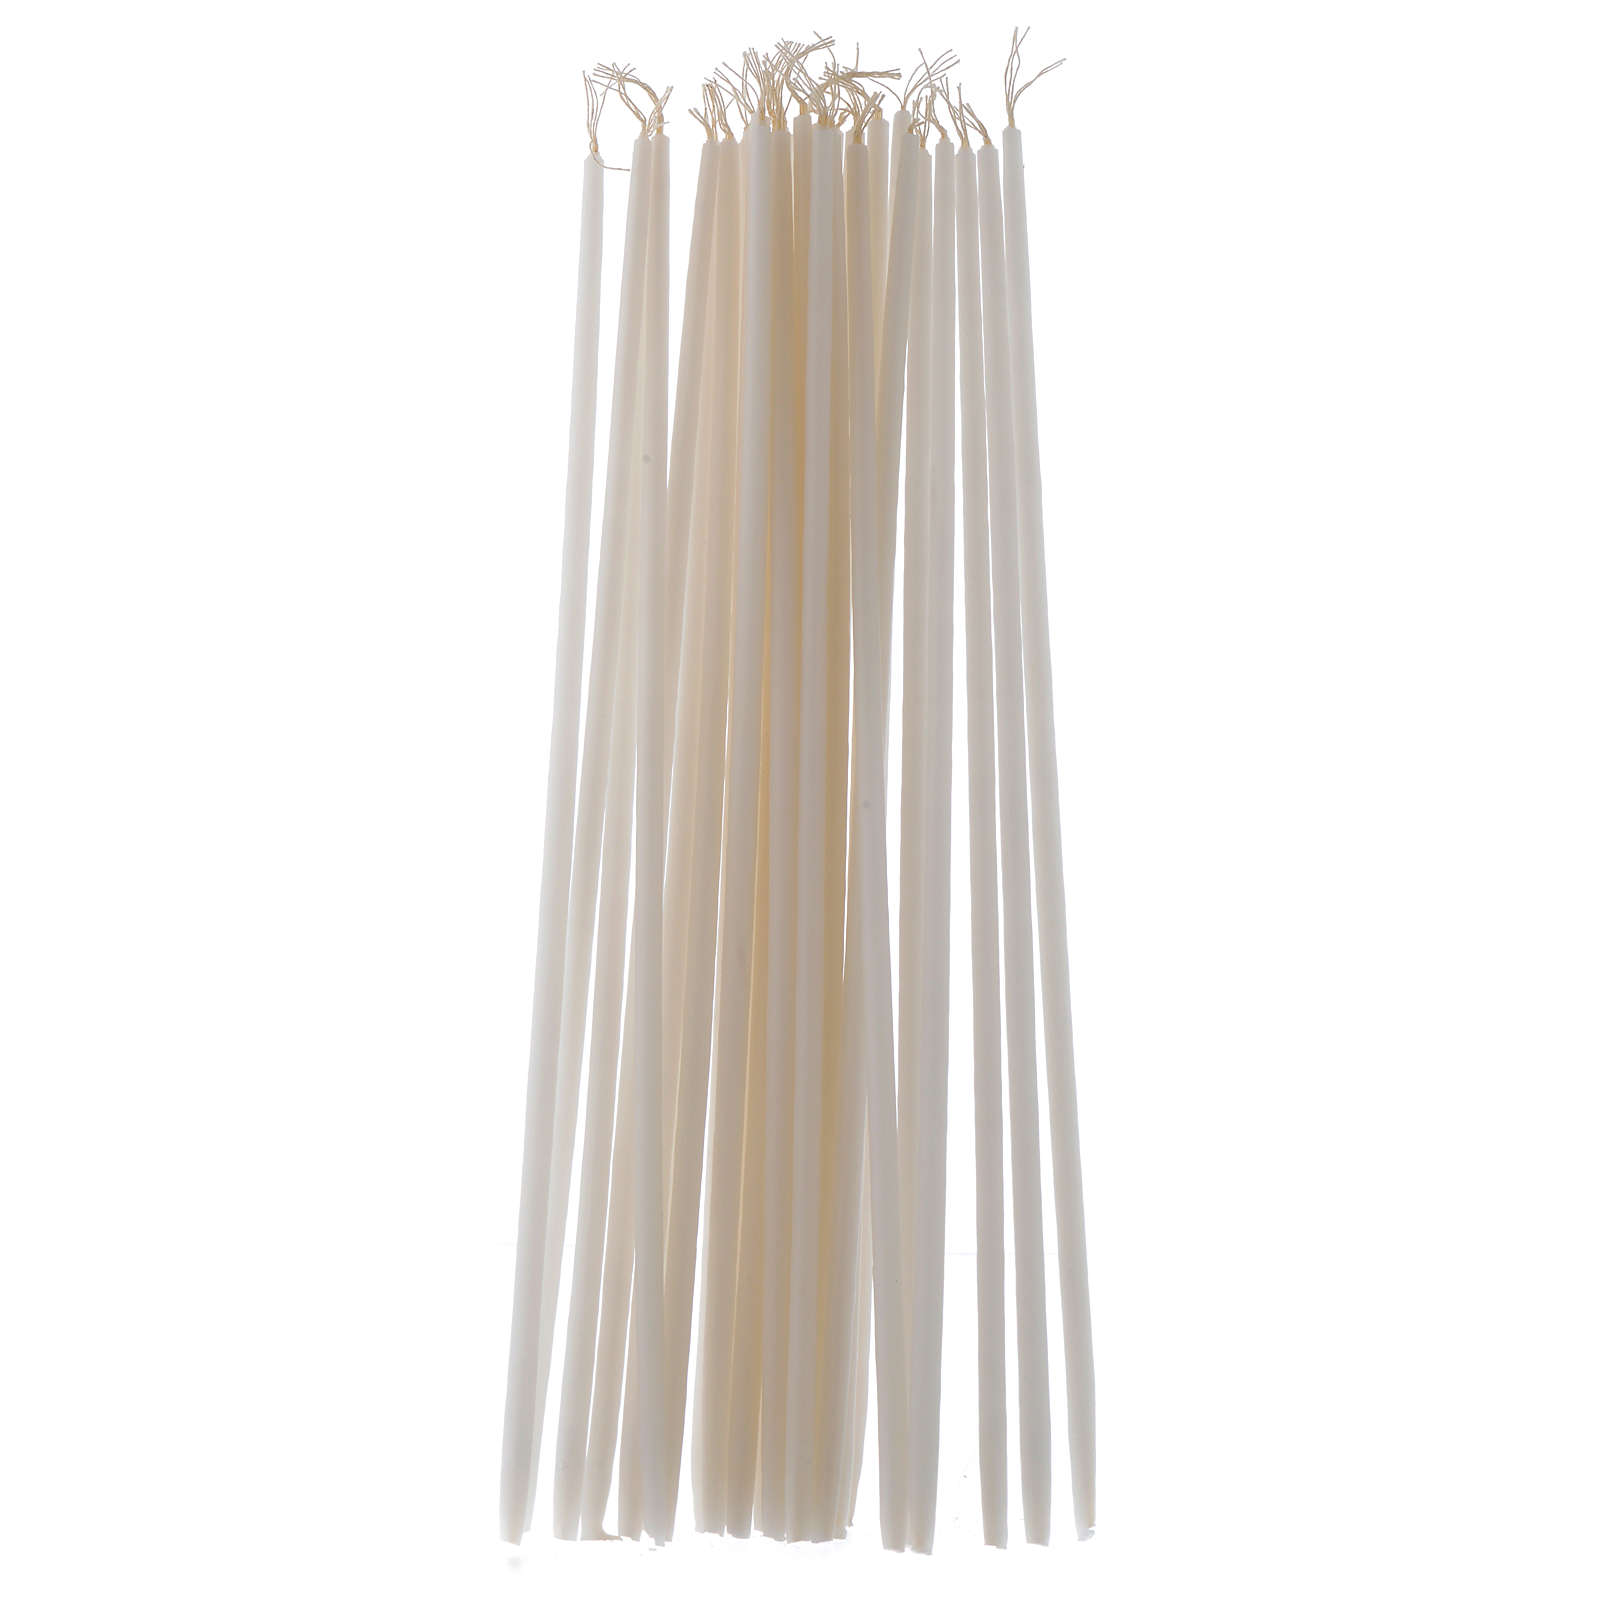 Non-dripping candles - 100 pack 3